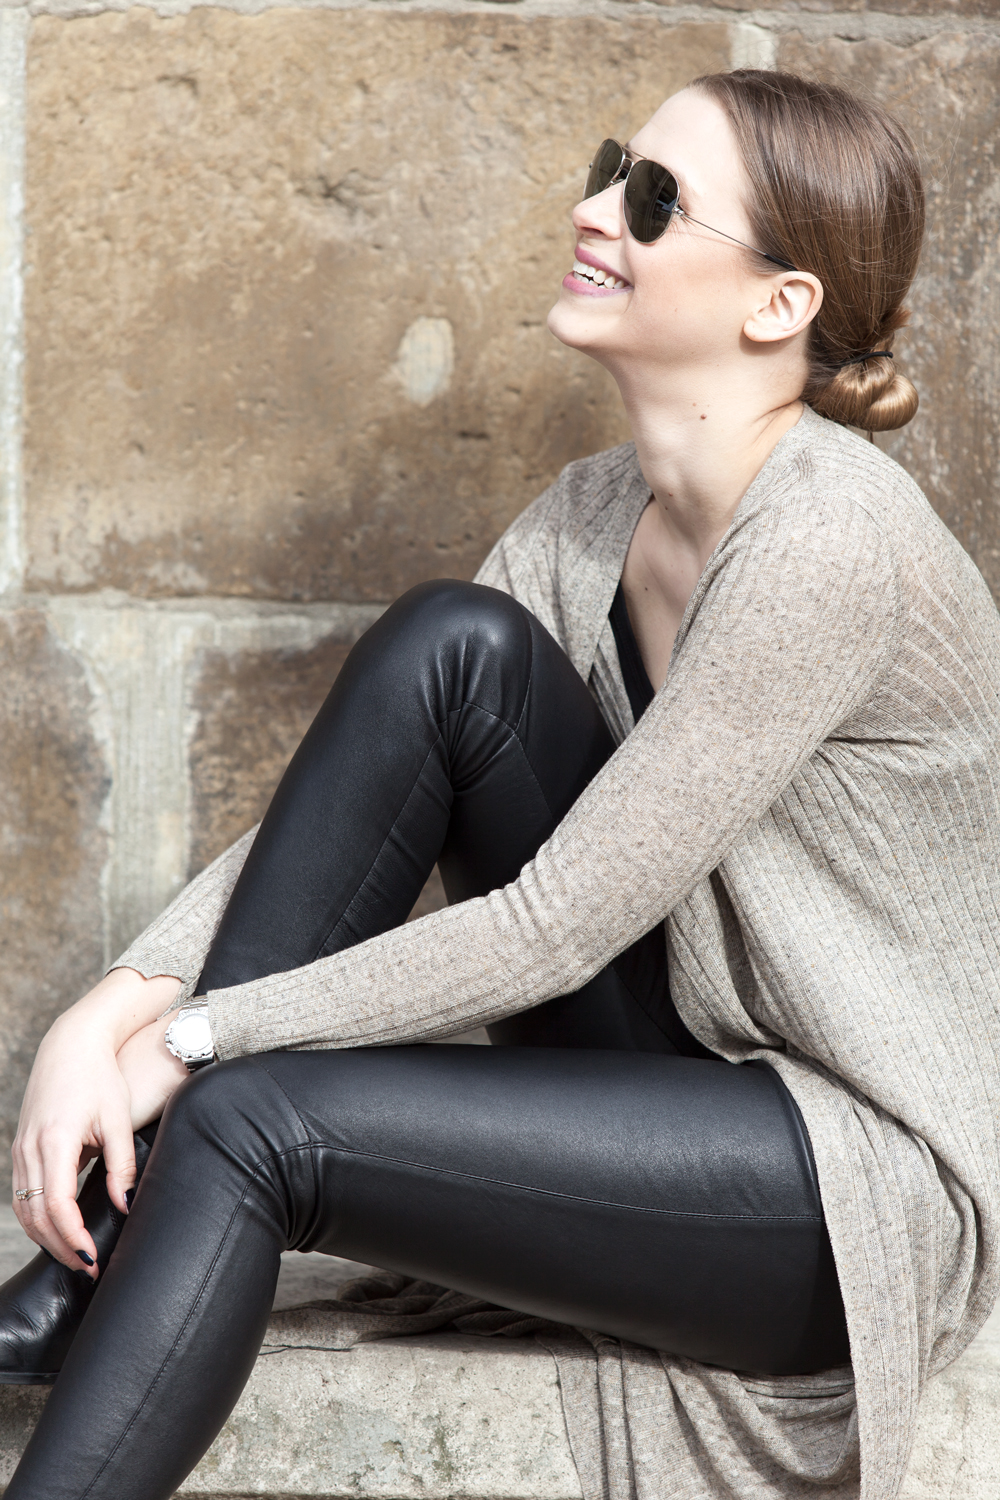 Elegance is an attitude – rocking leather and flowing knitwear.